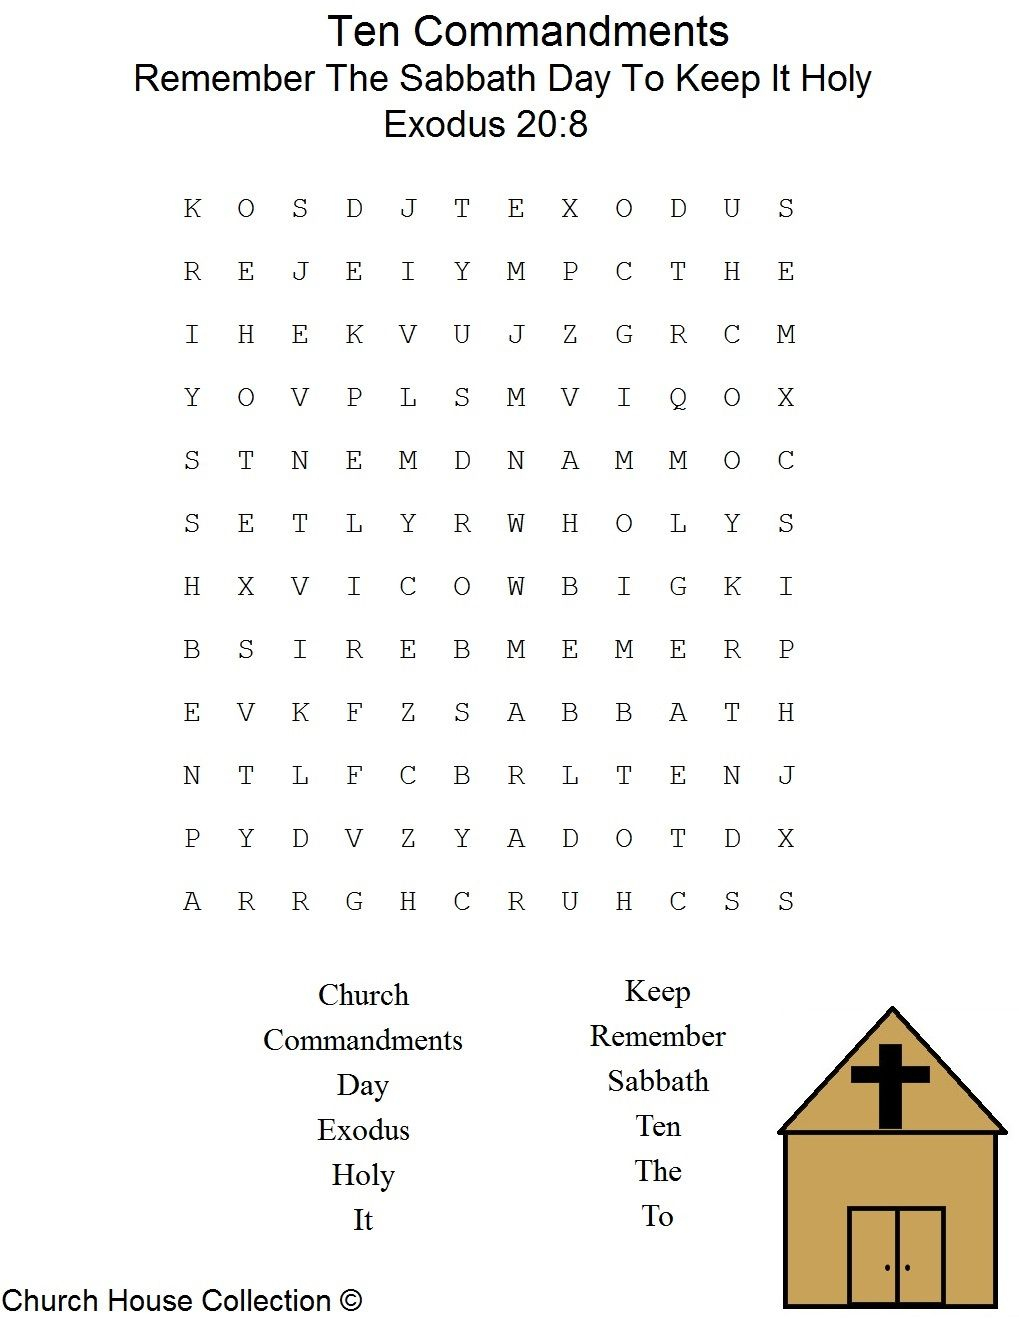 Remember The Sabbath Day To Keep It Holy Word Search Puzzle